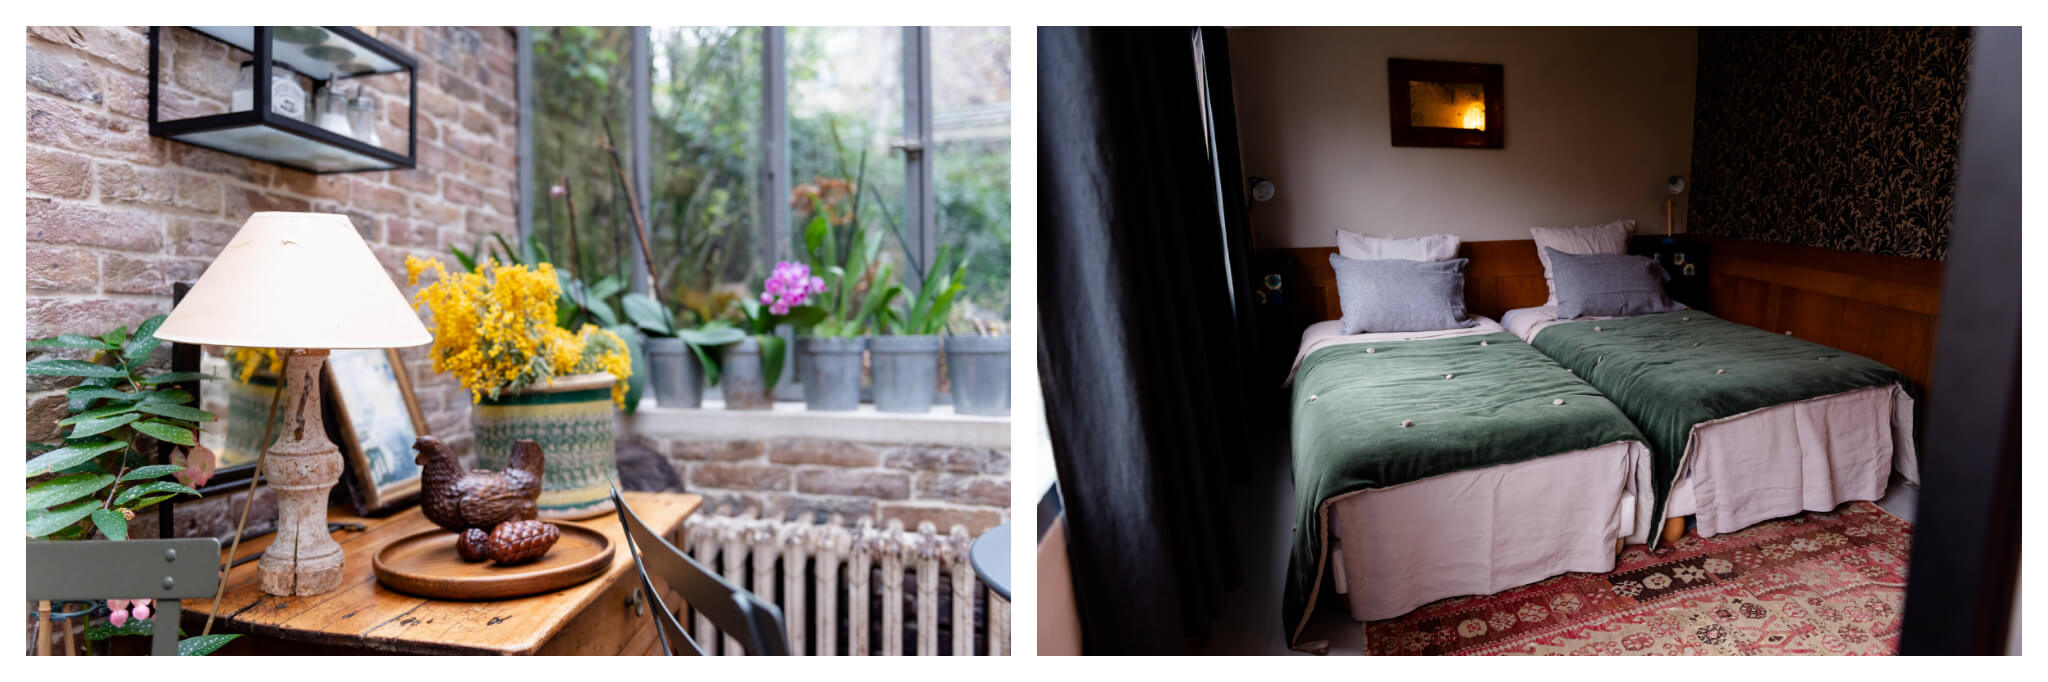 Left: Assorted items sit on a small wooden table, including a lamp and vase of yellow flowers. To the right is a windowsill lined with potted plants, Right: Two beds, decorated with gray pillows and green blankets, sit side-by-side at Le 66 in Paris.